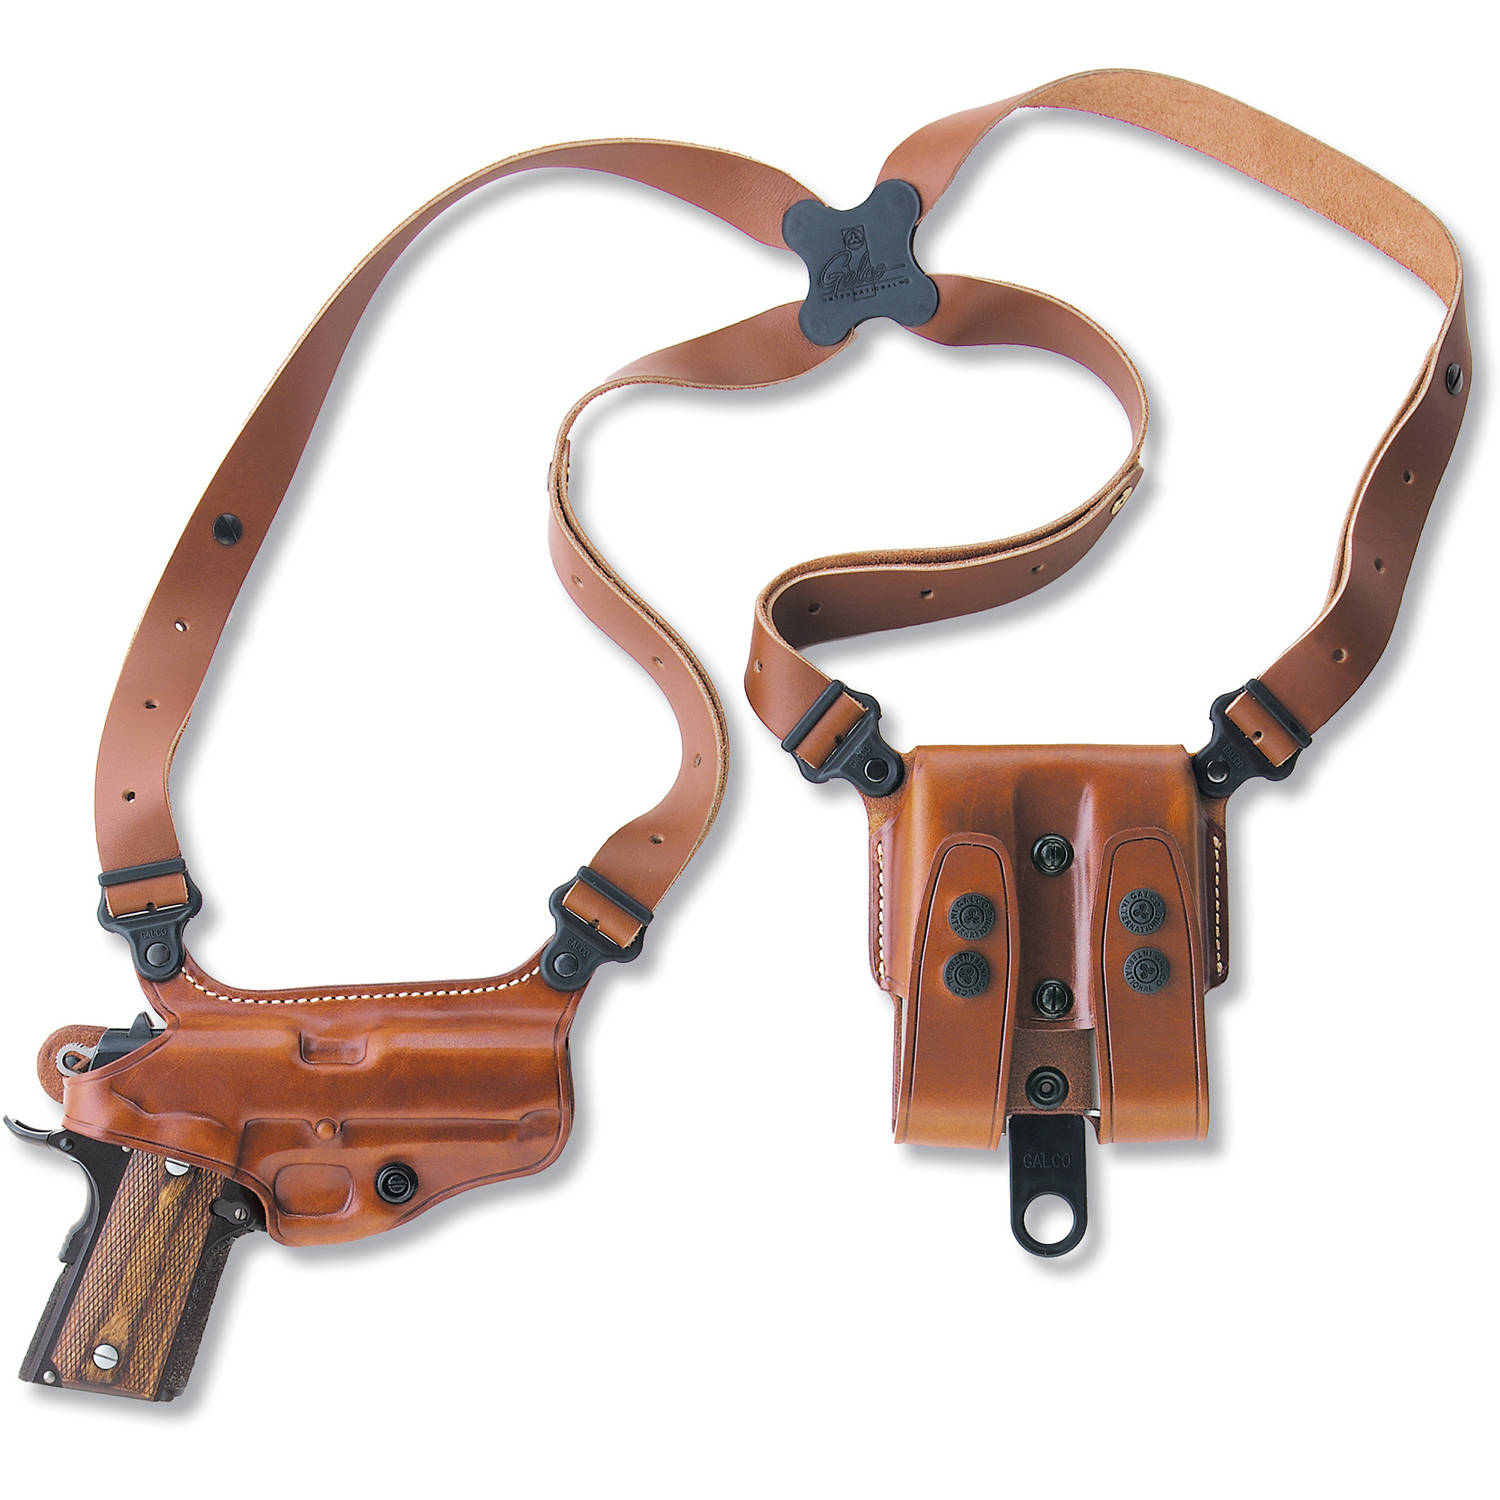 Galco Miami Classic Shoulder Holster, Fits HK USP 9mm .40S&W .45ACP, Right Hand, Tan Leather by Galco